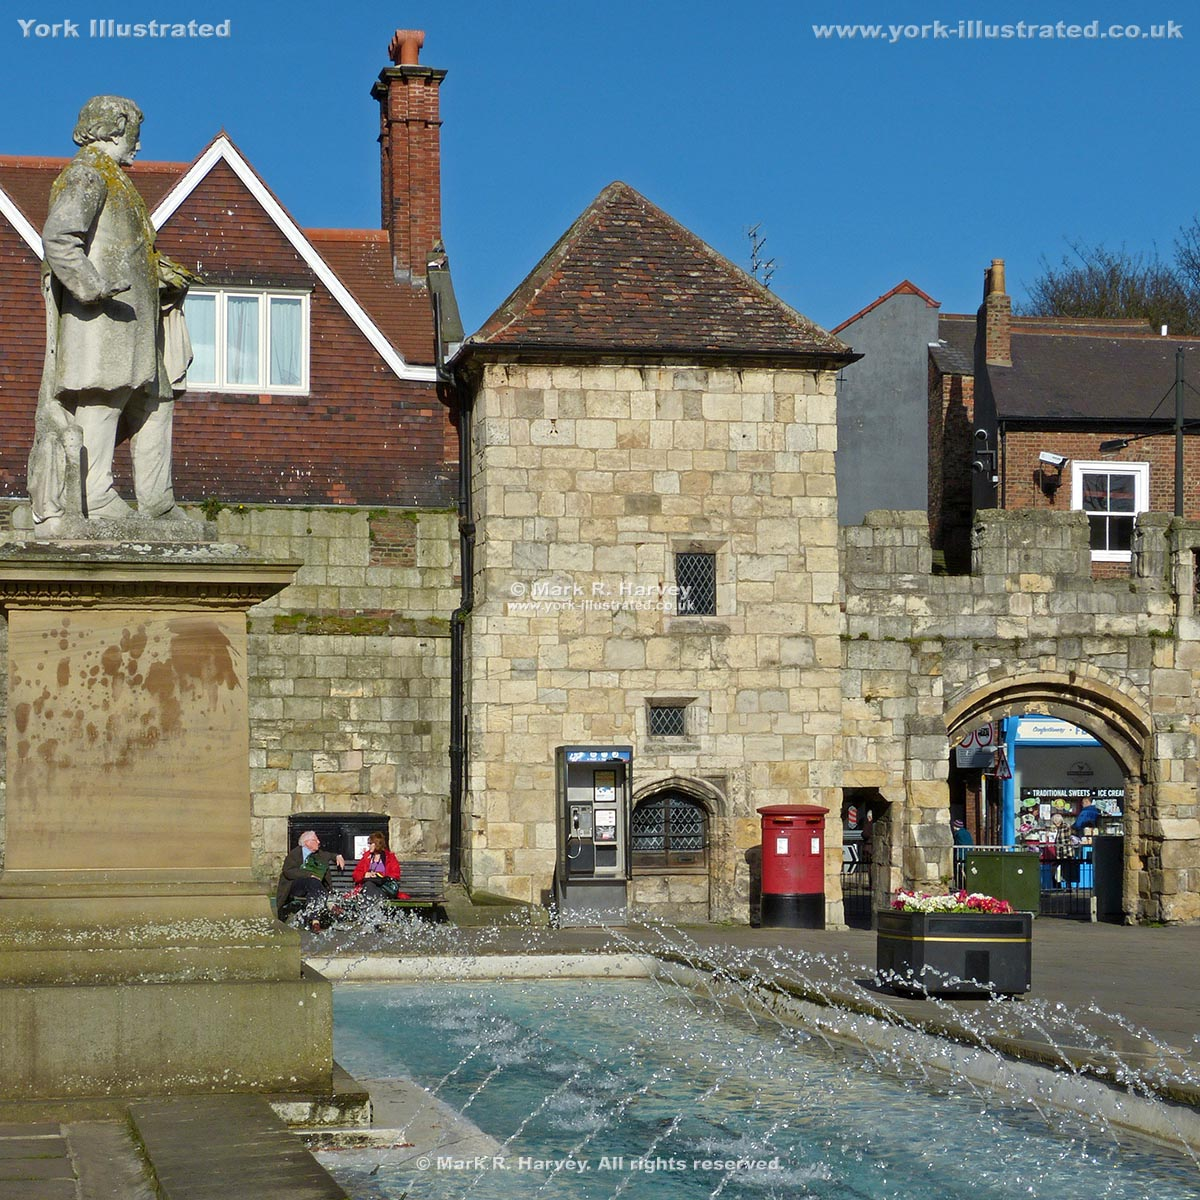 Photograph: Fountains in Exhibition Square (York) with Postern Tower and Queen Margaret's Arch beyond.